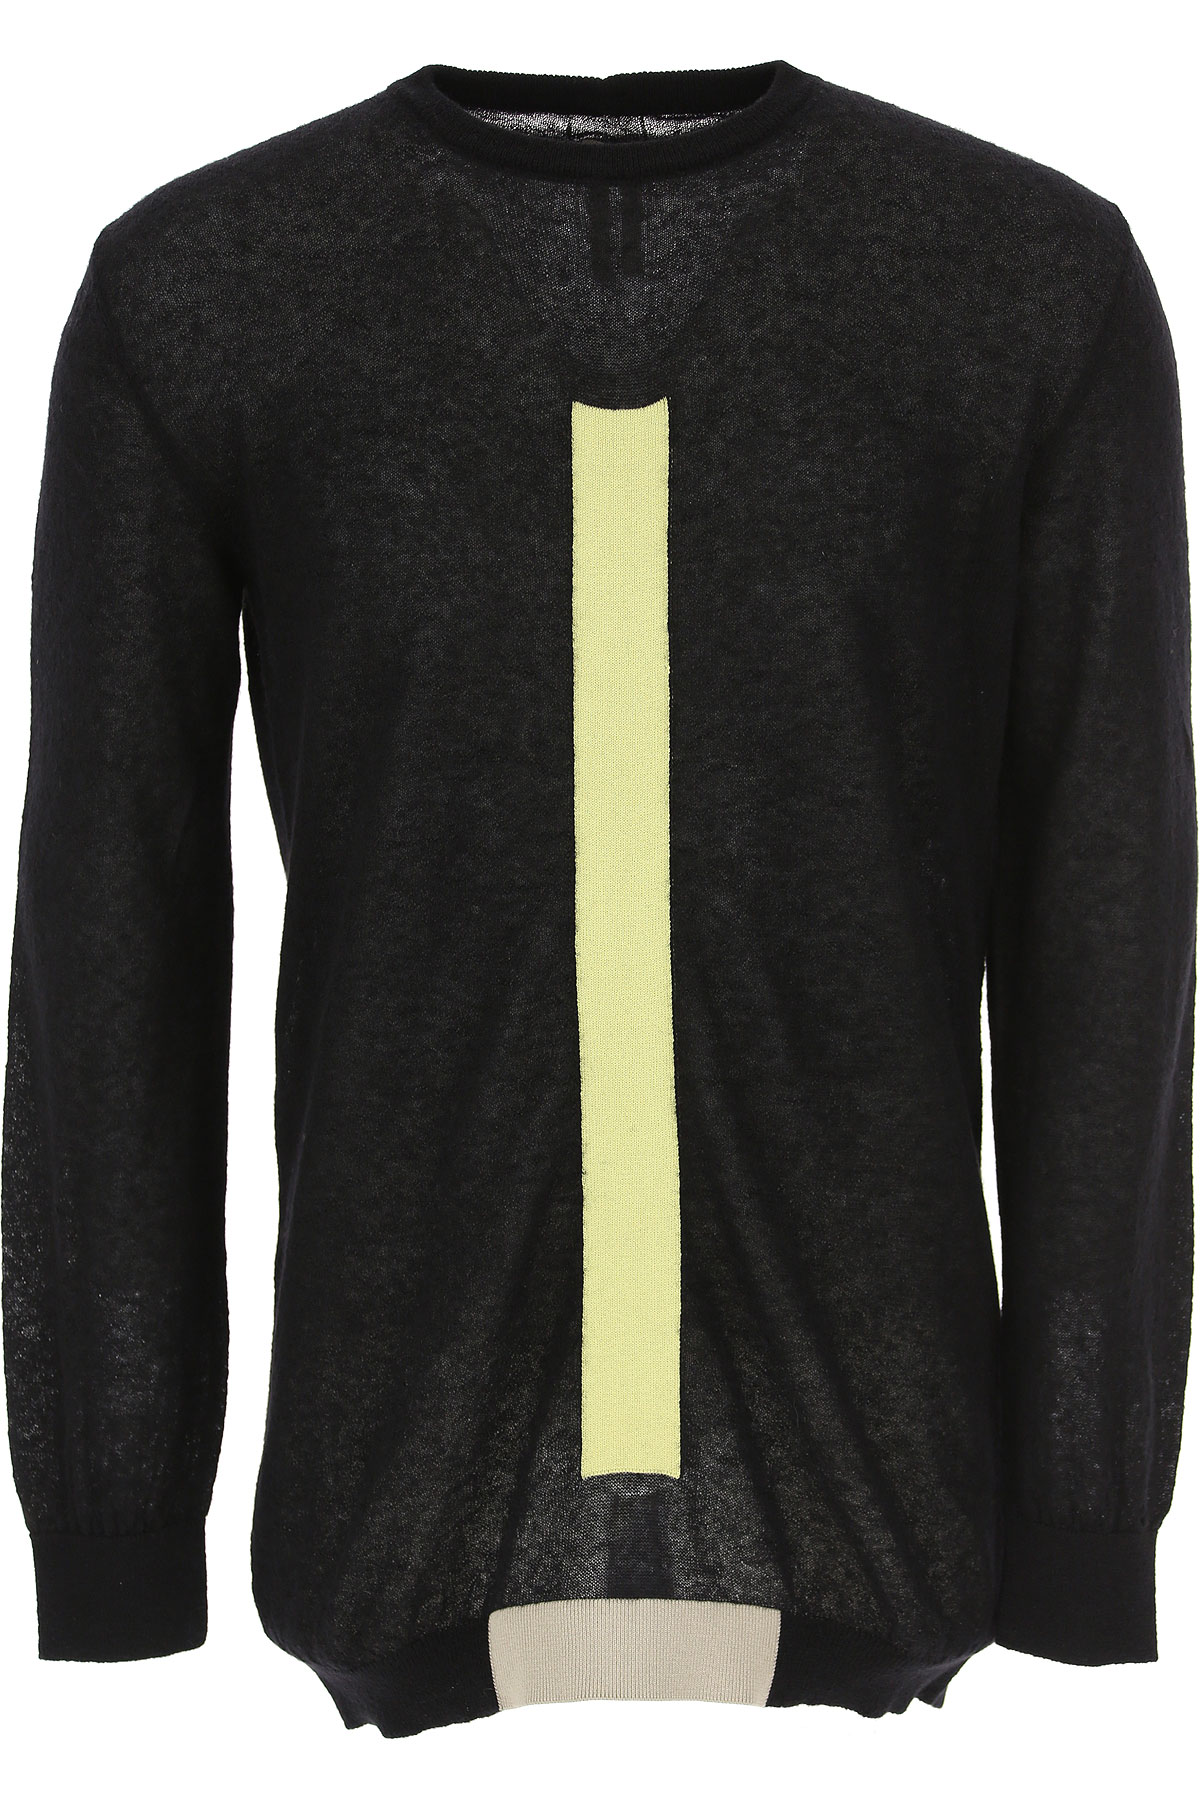 Rick Owens Sweater for Men Jumper On Sale in Outlet, Baby Alpaca, 2019